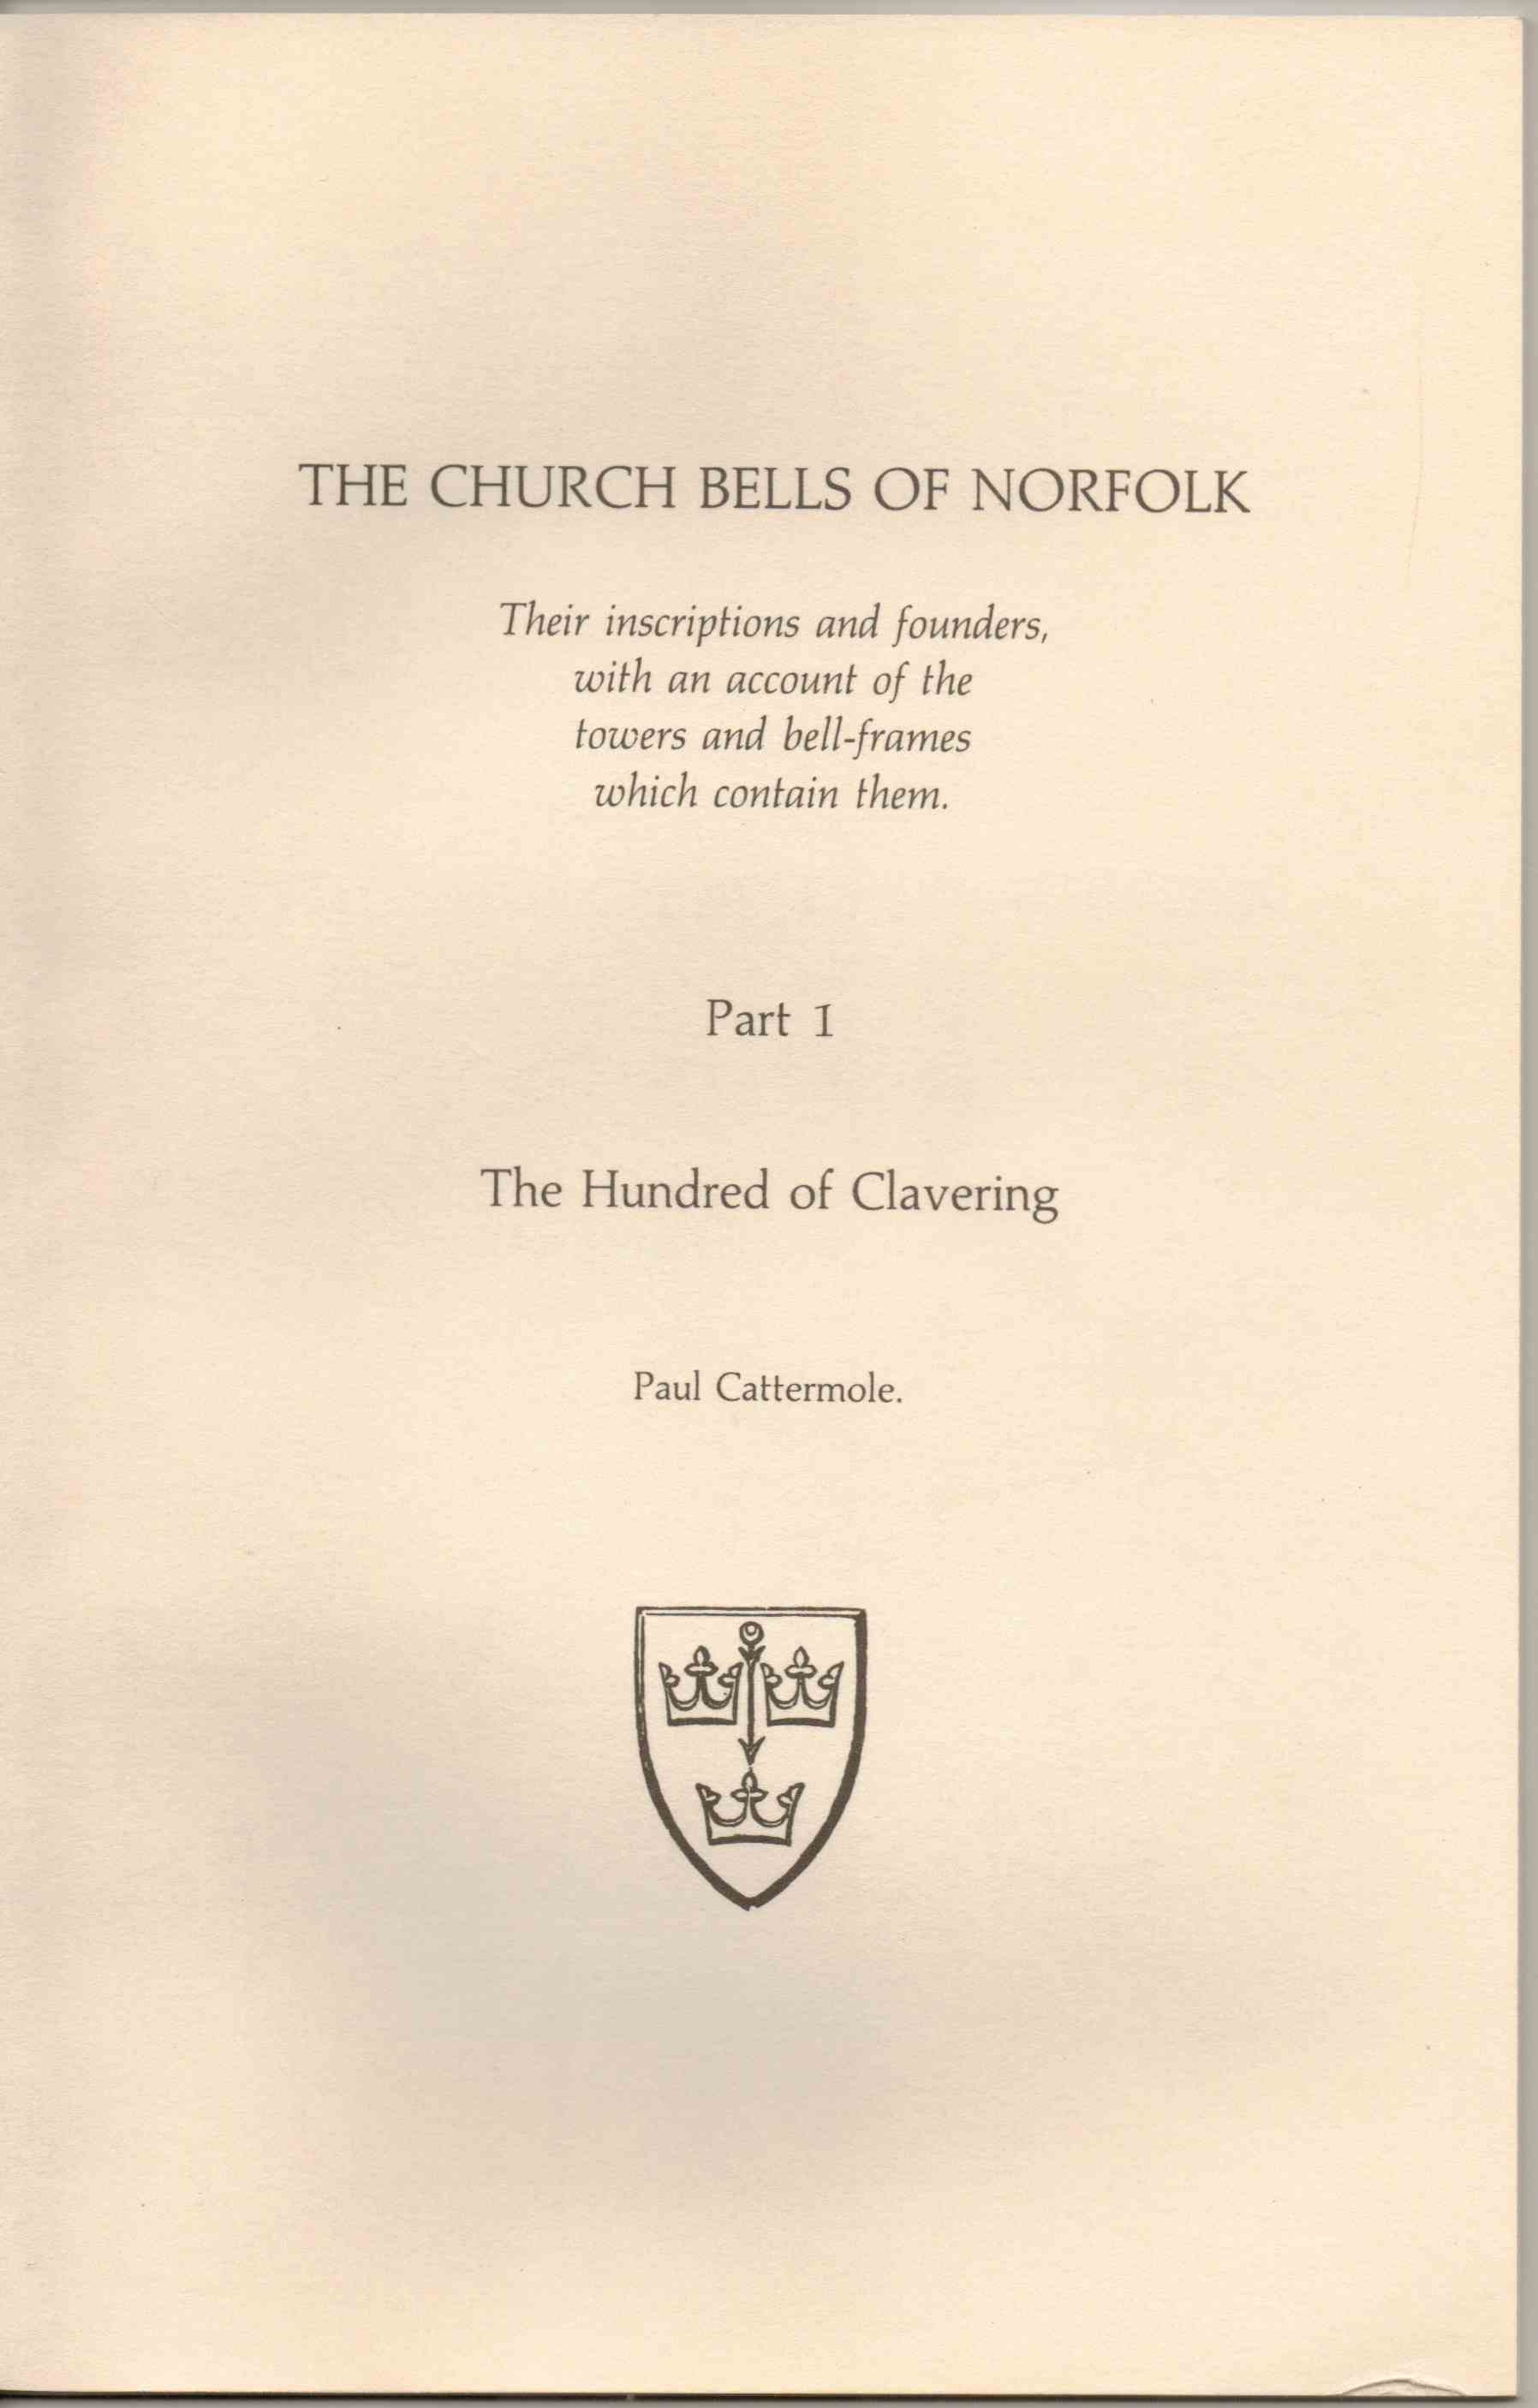 Image for The Church Bells of Norfolk Parts 1-5 (in 4 Volumes)